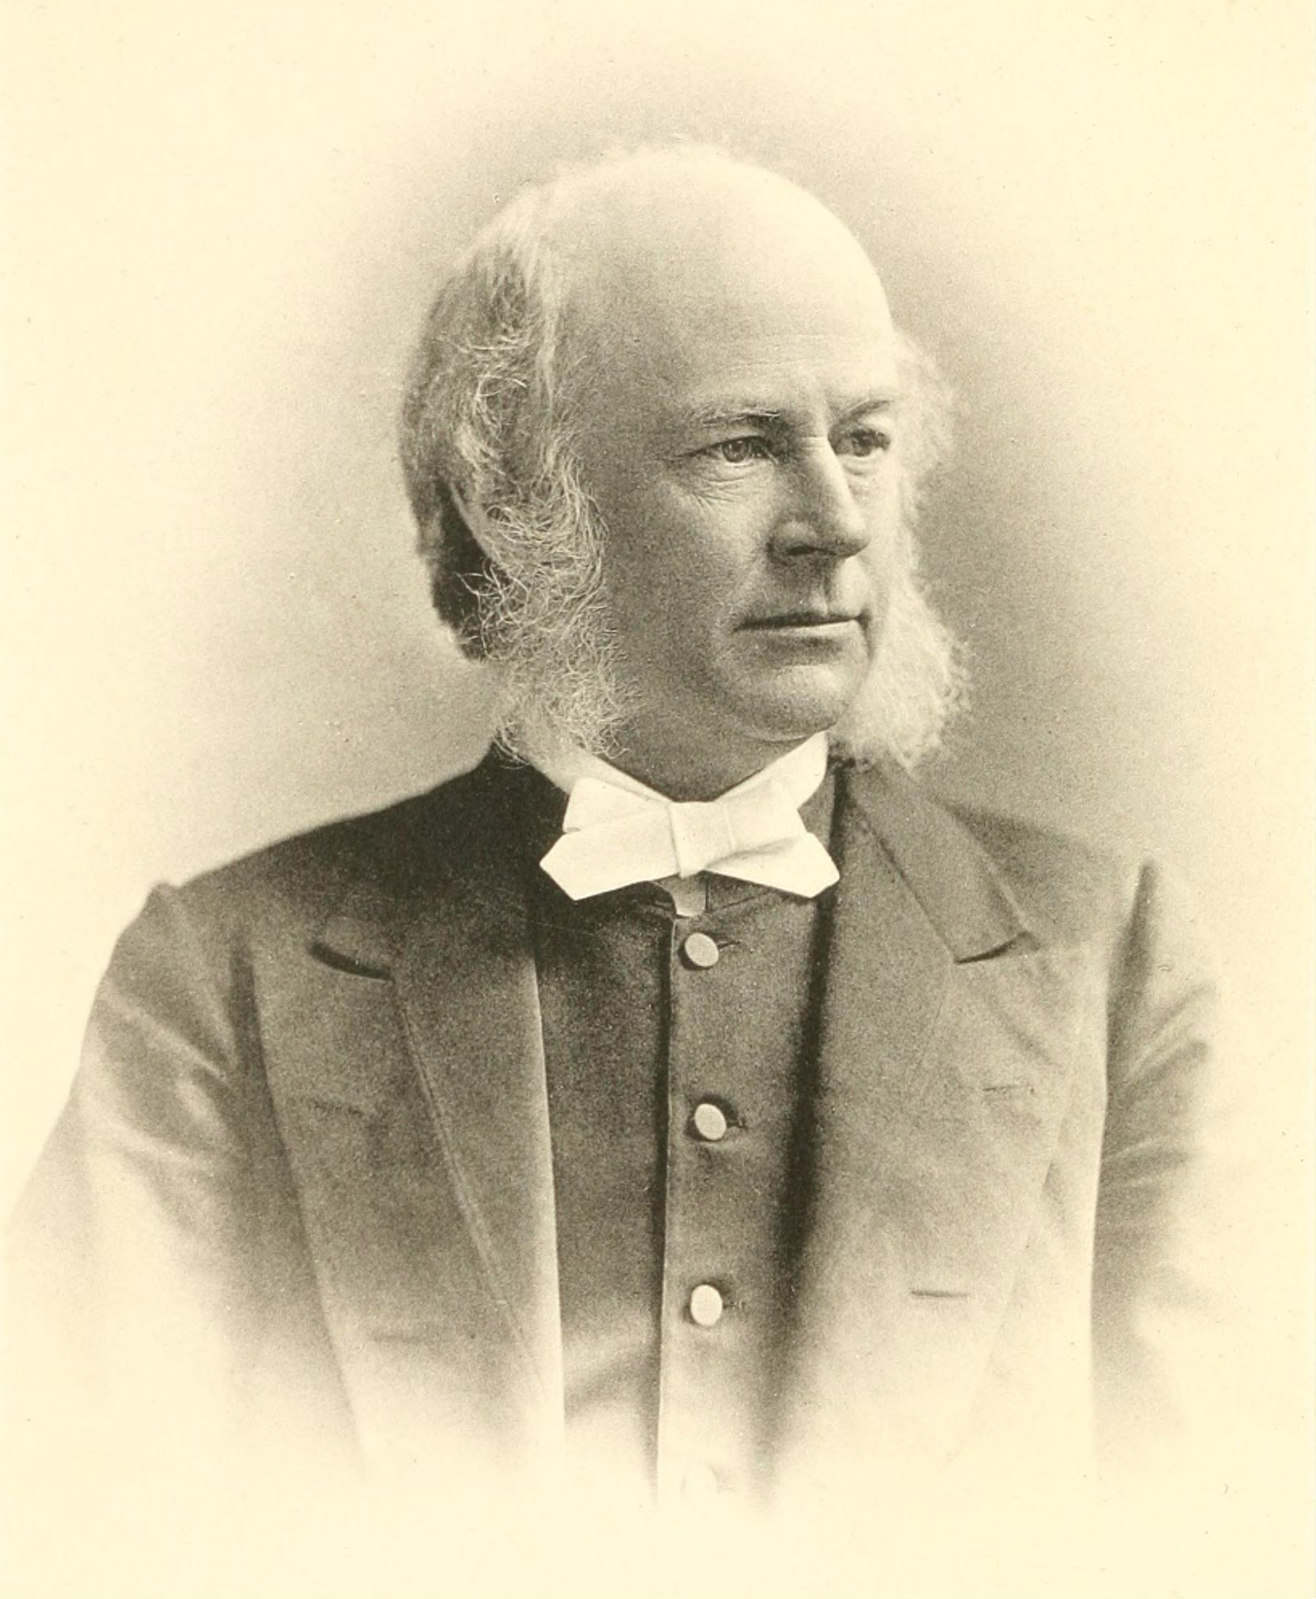 William Cattell - President of Lafayette College who saved the school in 1863